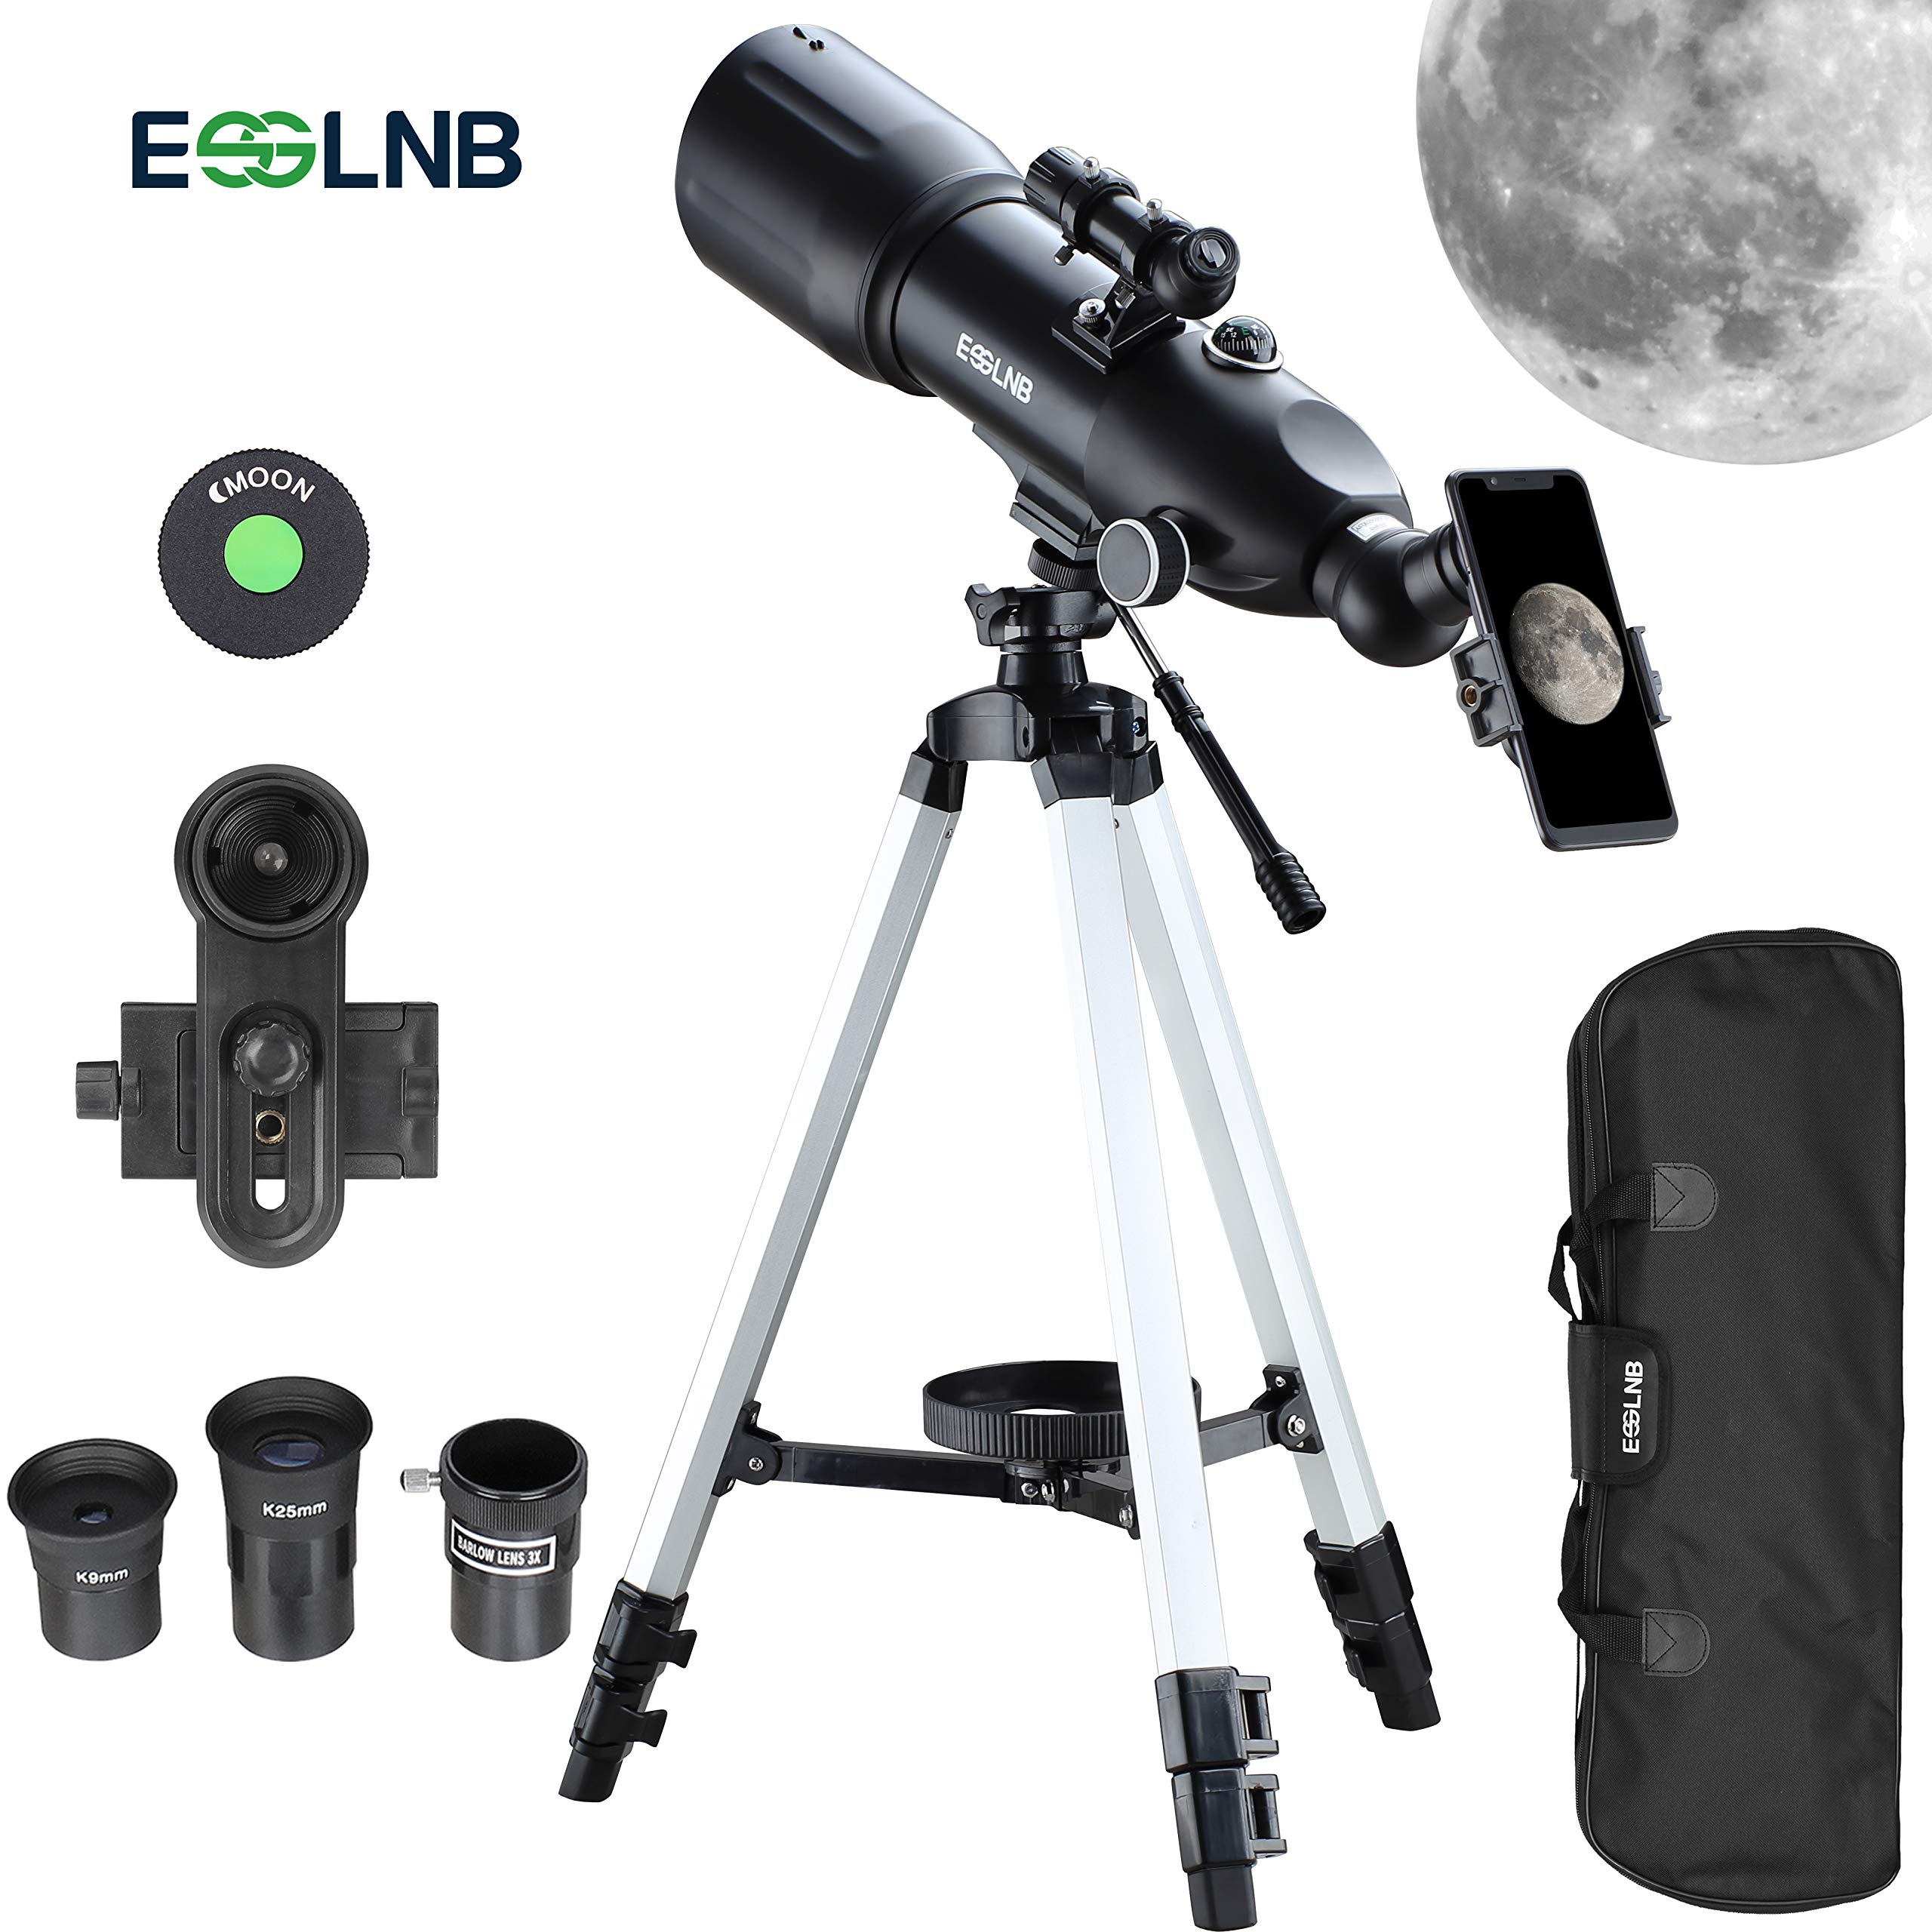 ESSLNB Telescopes for Adults Astronomy Beginners Kids 400X80mm with 10X Smartphone Adapter Adjustable Tripod Case and Moon Filter Erect-Image Diagonal Prism by ESSLNB